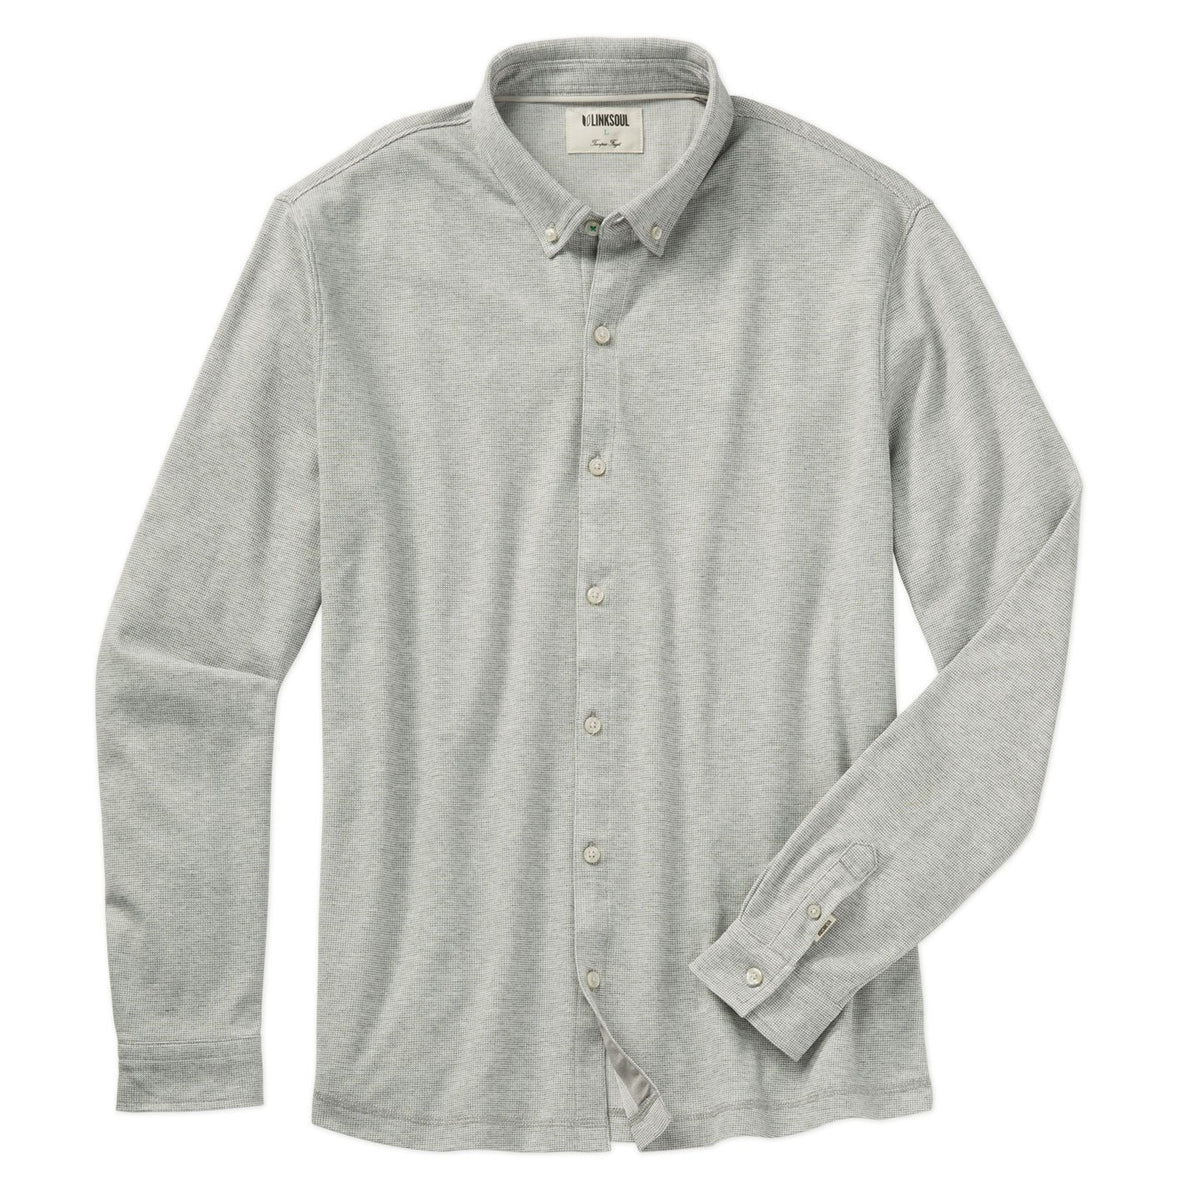 Double Knit Dry-Tech Long Sleeve Button-Down Shirt